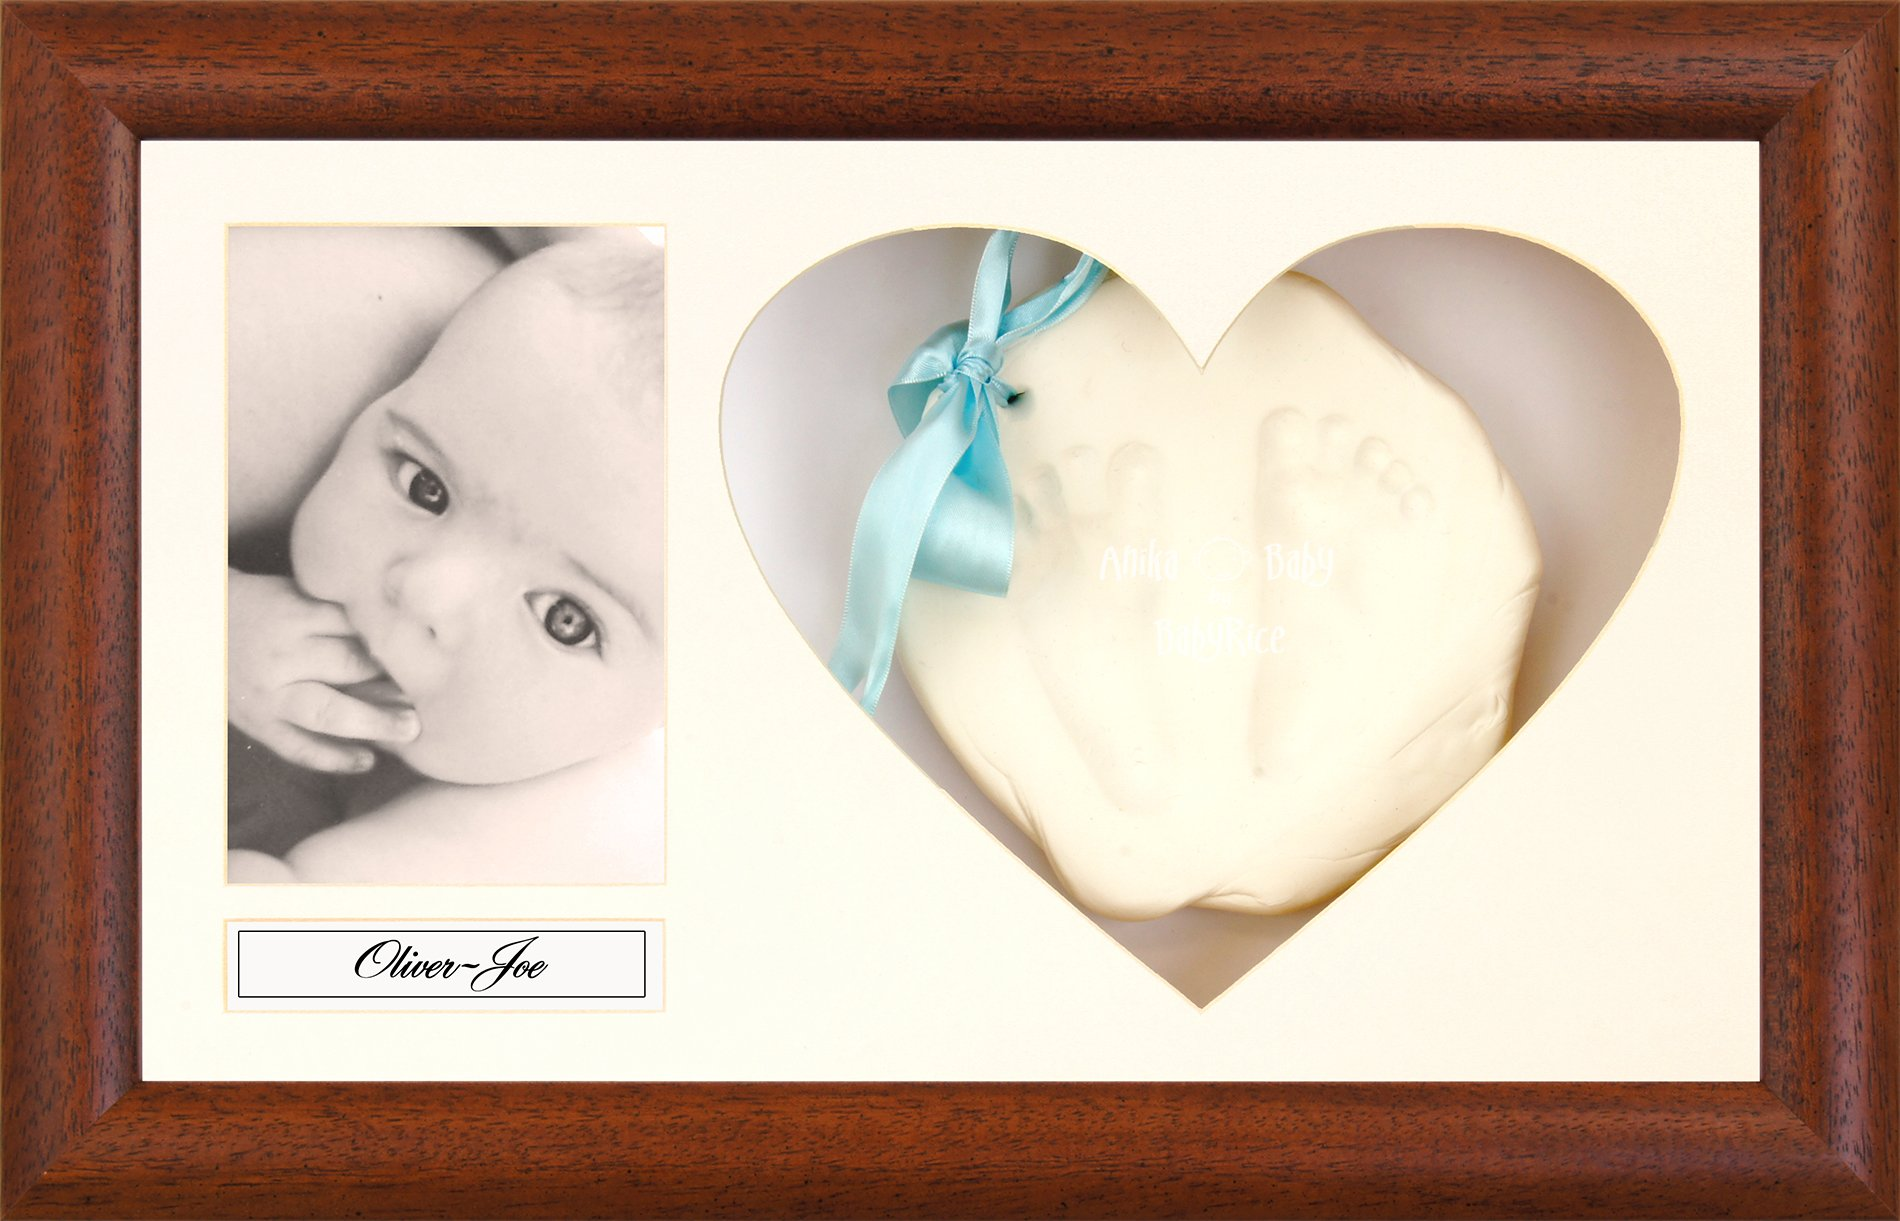 BabyRice Baby Soft Imprint Clay Hand & Footprint Kit / Dark Wood Effect Display Frame with Heart Mount - Choose Clay color (White)